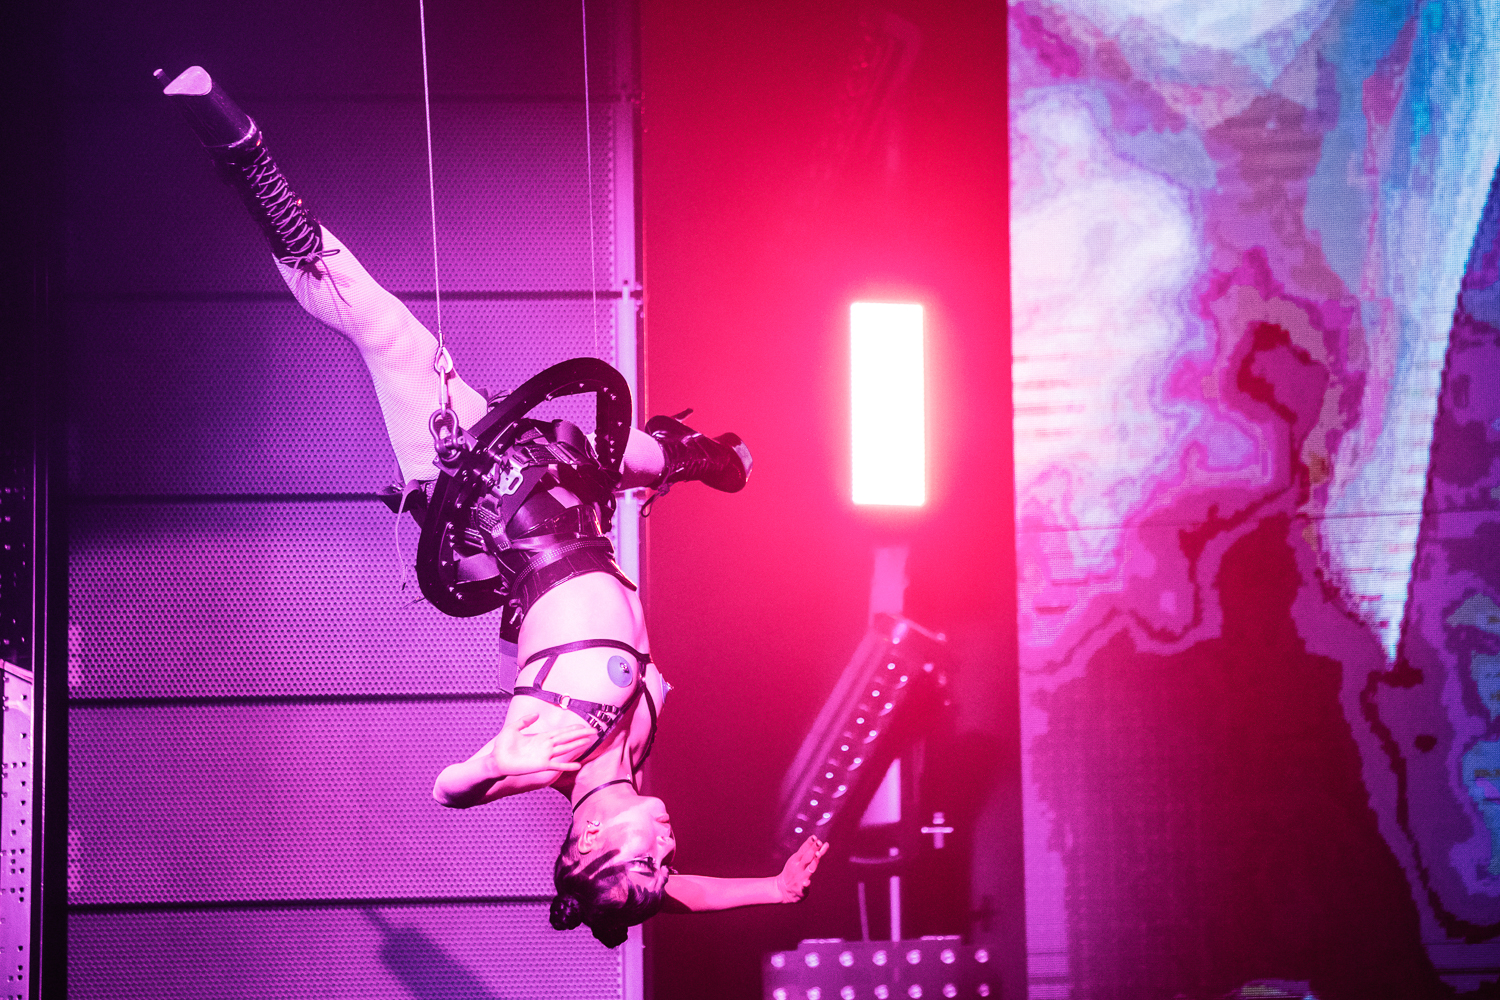 CLUB CHROMA at PARADISE CITY - In an aerial harness performance to accompany world renowned DJ Mesto and his line up